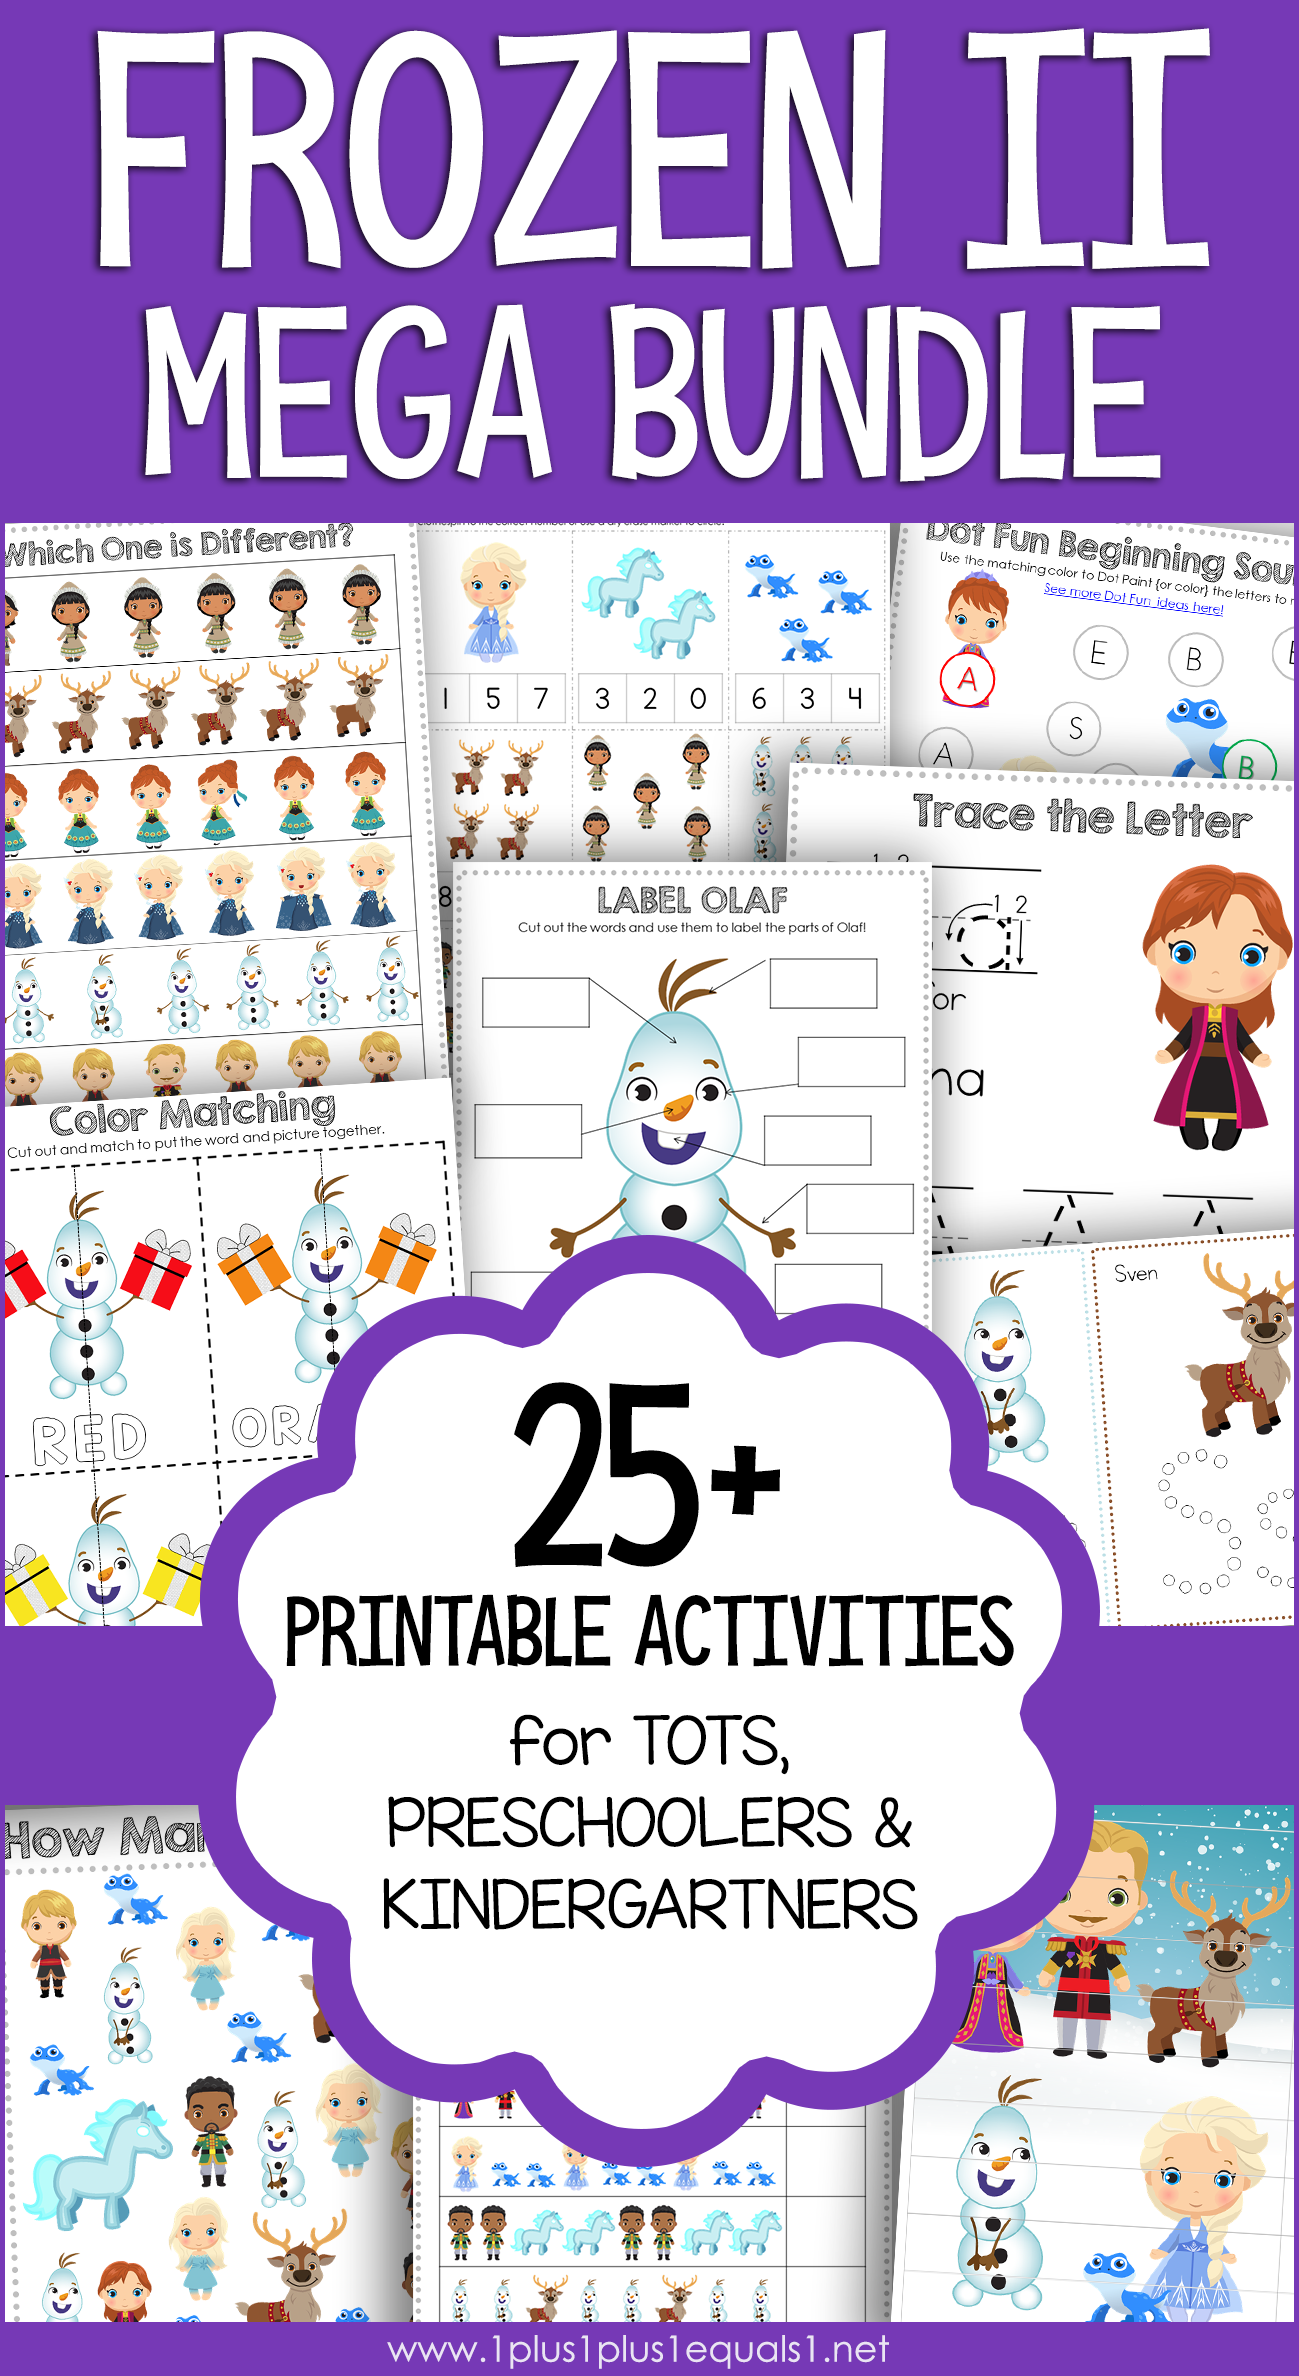 Printable Activities By Lori Campbell On Preschool